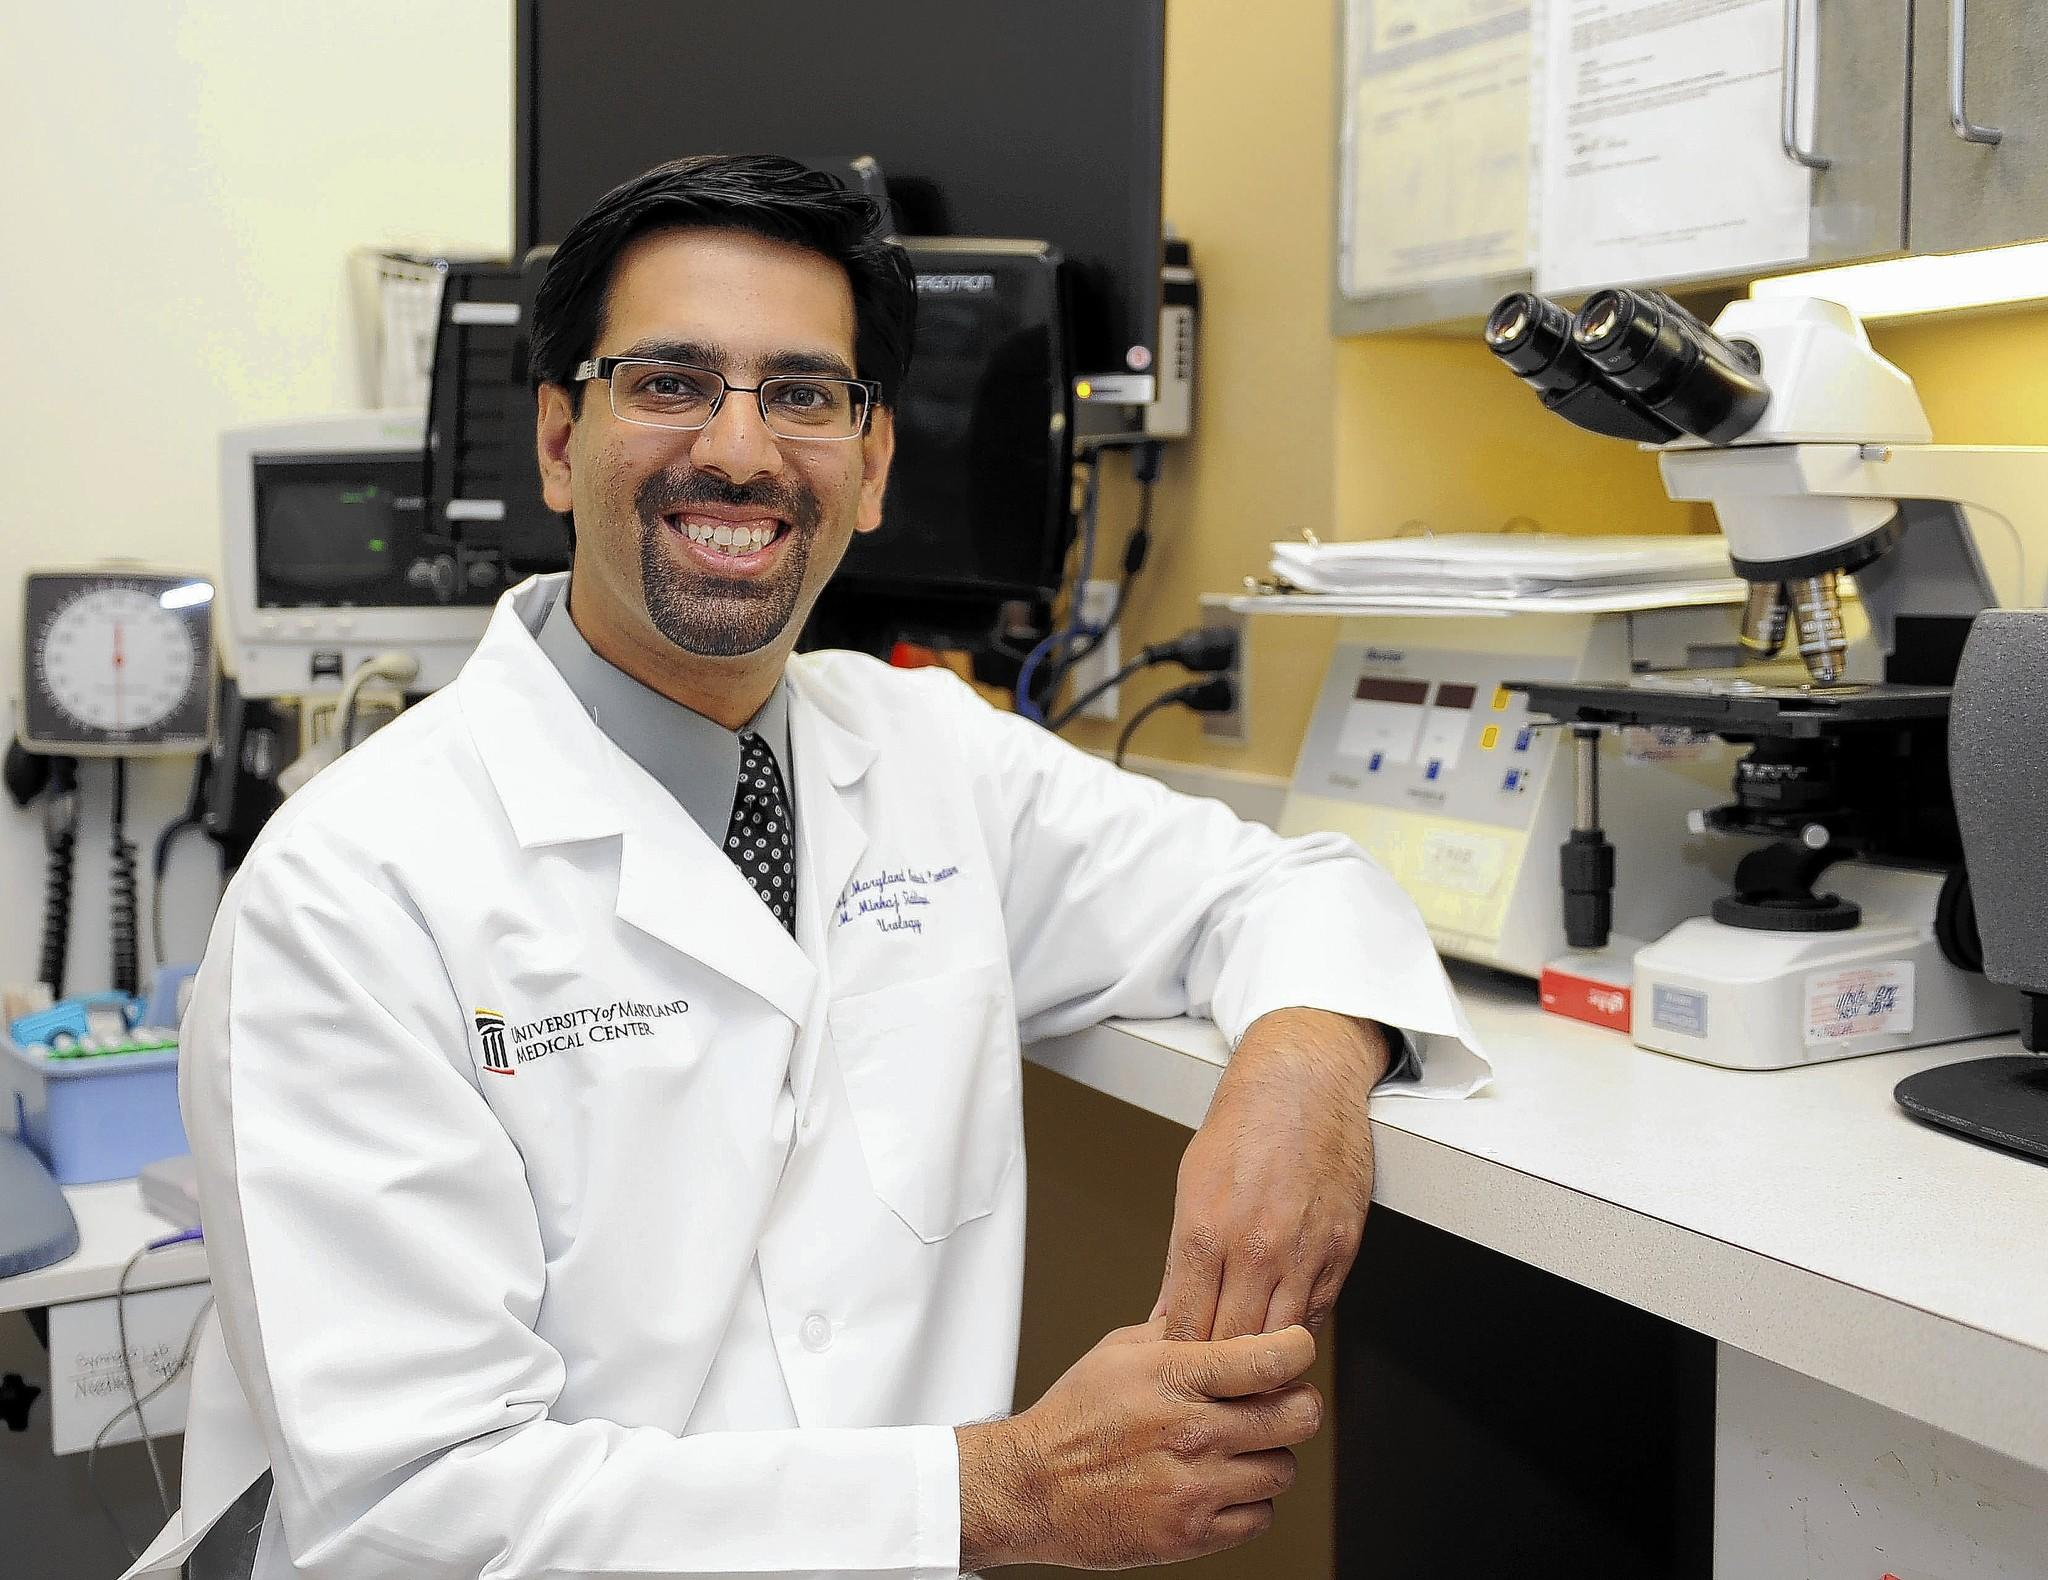 Dr. Mohummad Minhaj Siddiqui, director of urologic robotic surgery and an assistant professor at the University of Maryland School of Medicine